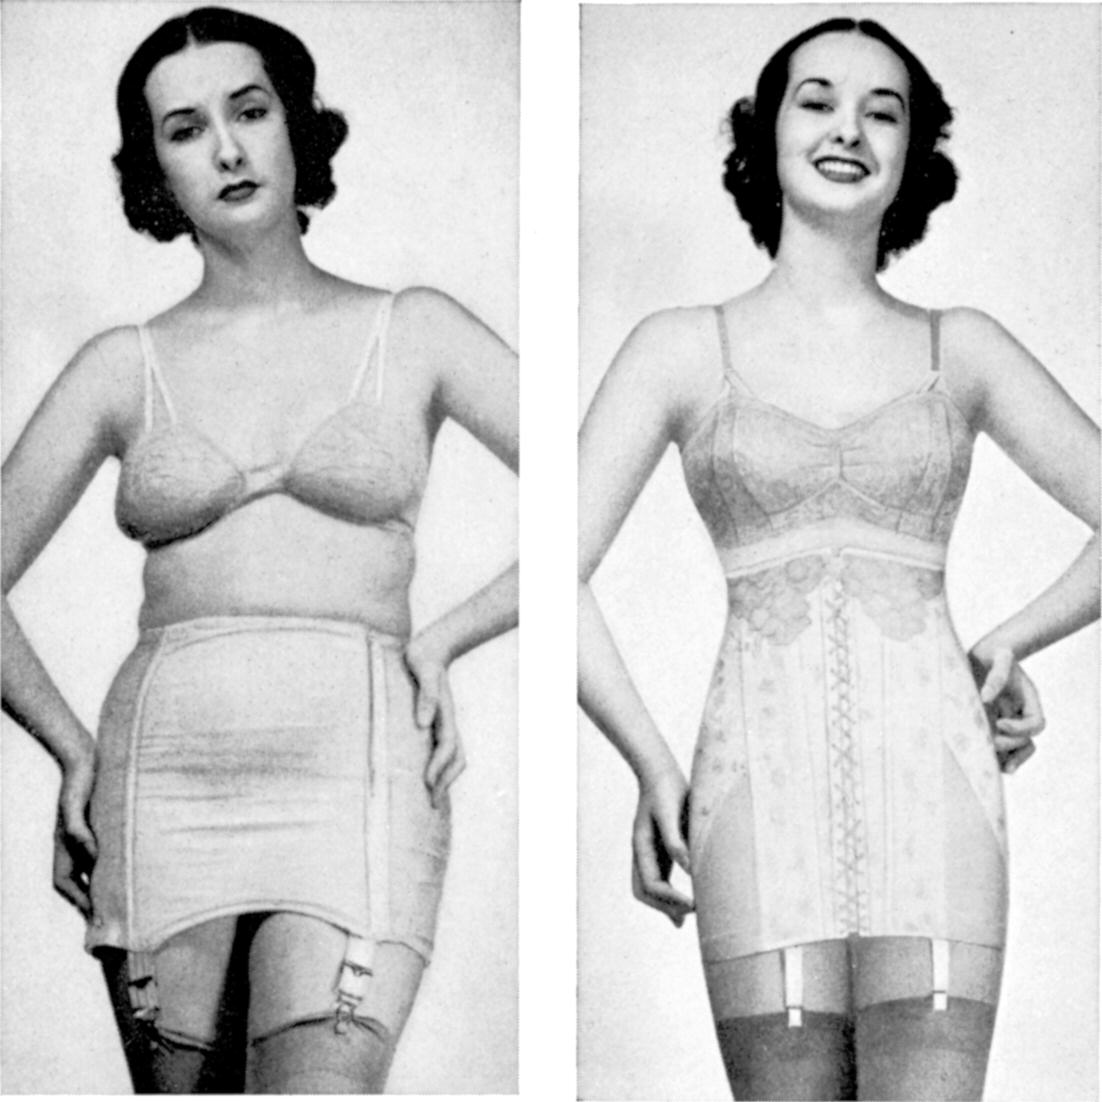 Spencer_corset_1941_before_after.jpg